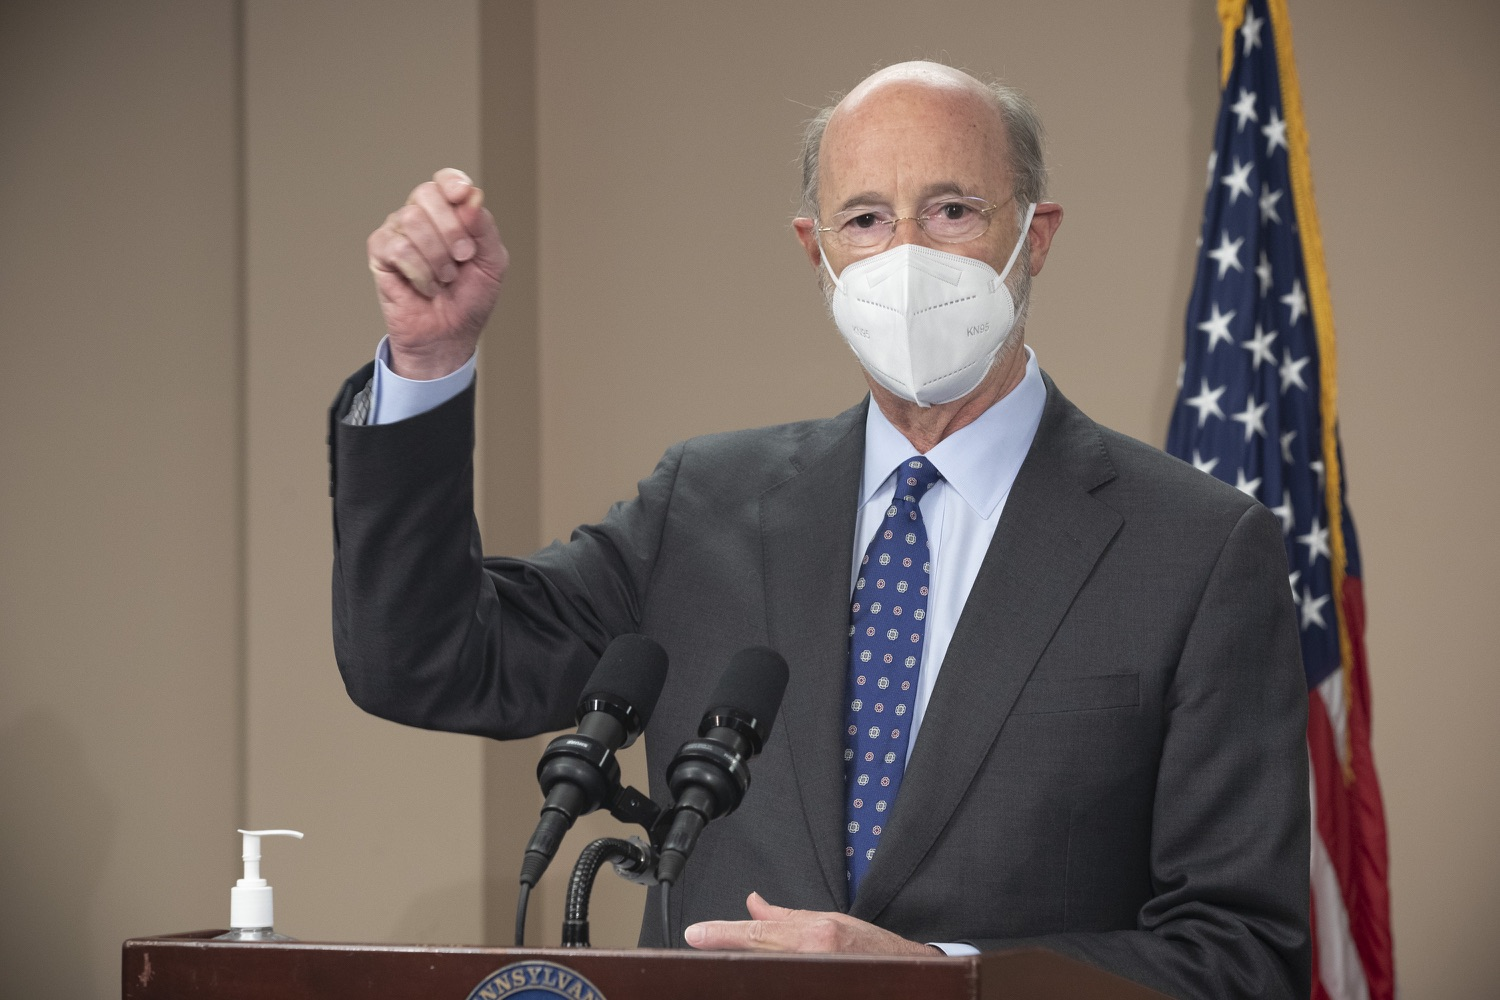 """<a href=""""https://filesource.wostreaming.net/commonwealthofpa/photo/18646_gov_vaccines_dz_008.jpg"""" target=""""_blank"""">⇣Download Photo<br></a>Pennsylvania Governor Tom Wolf speaking with the press.  After vaccinating more than 112,500 teachers and school staff in only about three weeks, Governor Tom Wolf visited Luzerne County today to announce the special vaccination initiative is a success and was completed ahead of schedule. The accomplishment is an important step to help more students and teachers safely return to classrooms across the state.  Kingston, PA - April 2, 2021"""